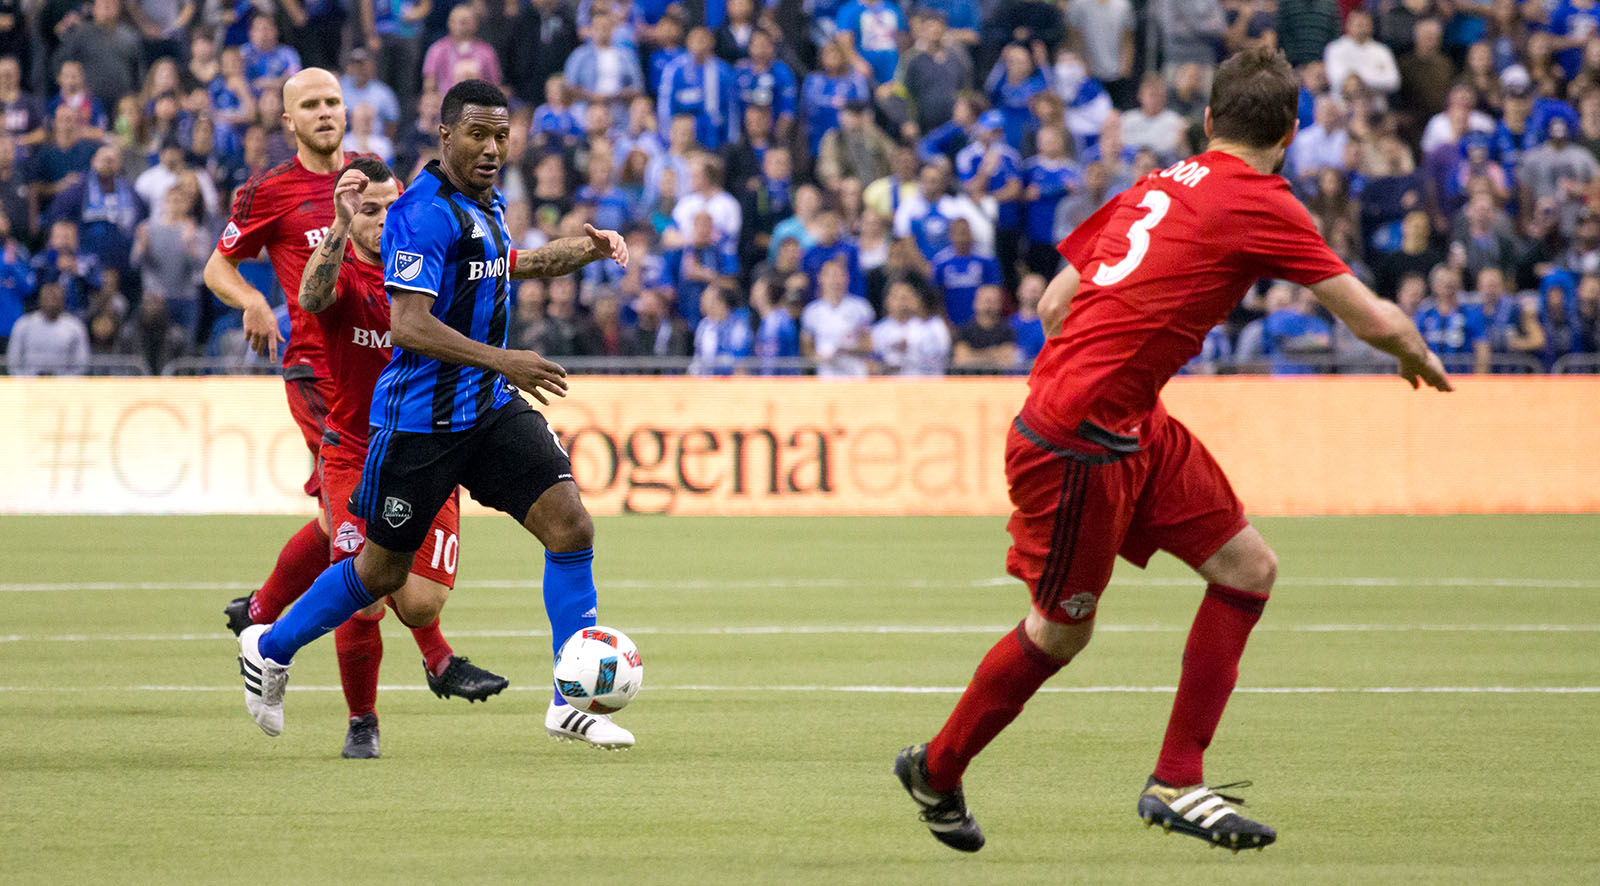 Giovinco and Bradley try to grab the ball back from a Montreal midfielder.